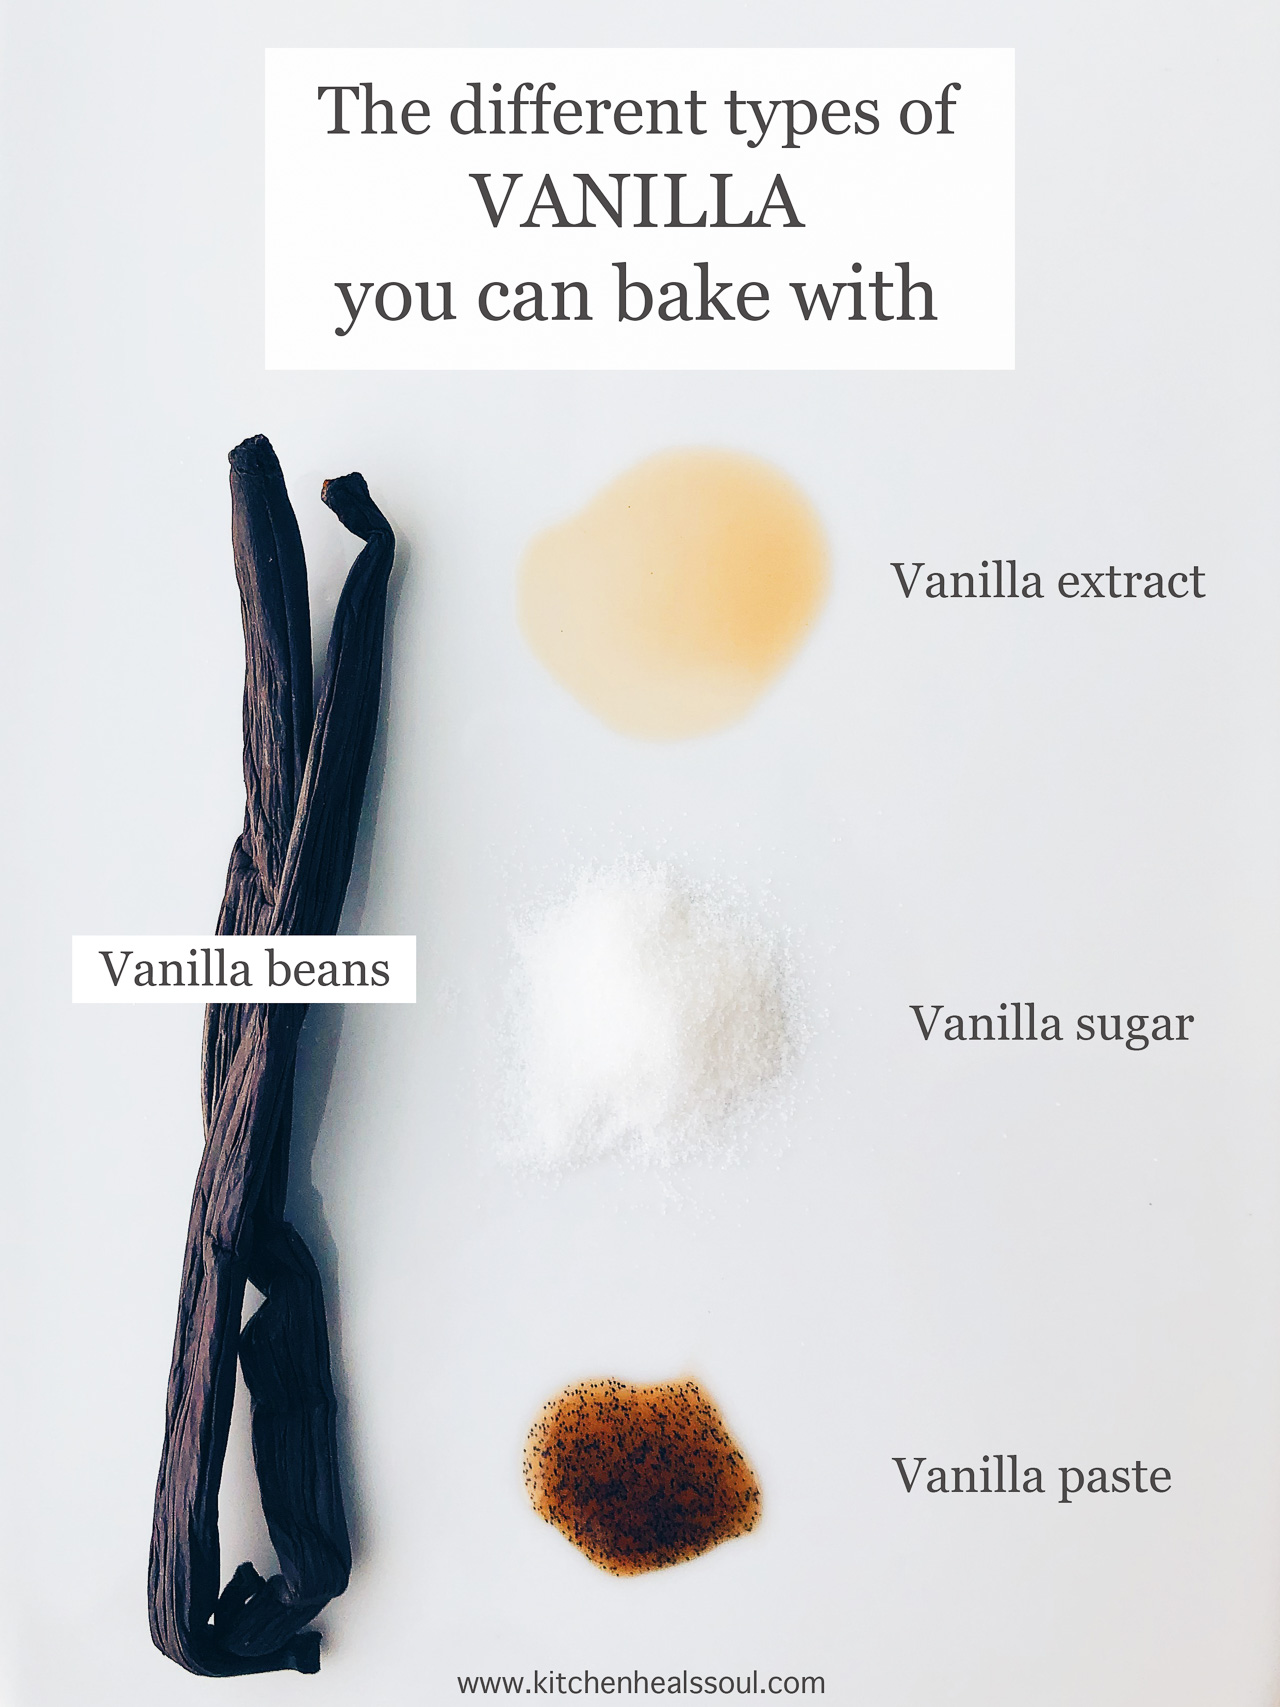 The different types of vanilla you can bake with featuring vanilla beans, extract, sugar, and paste